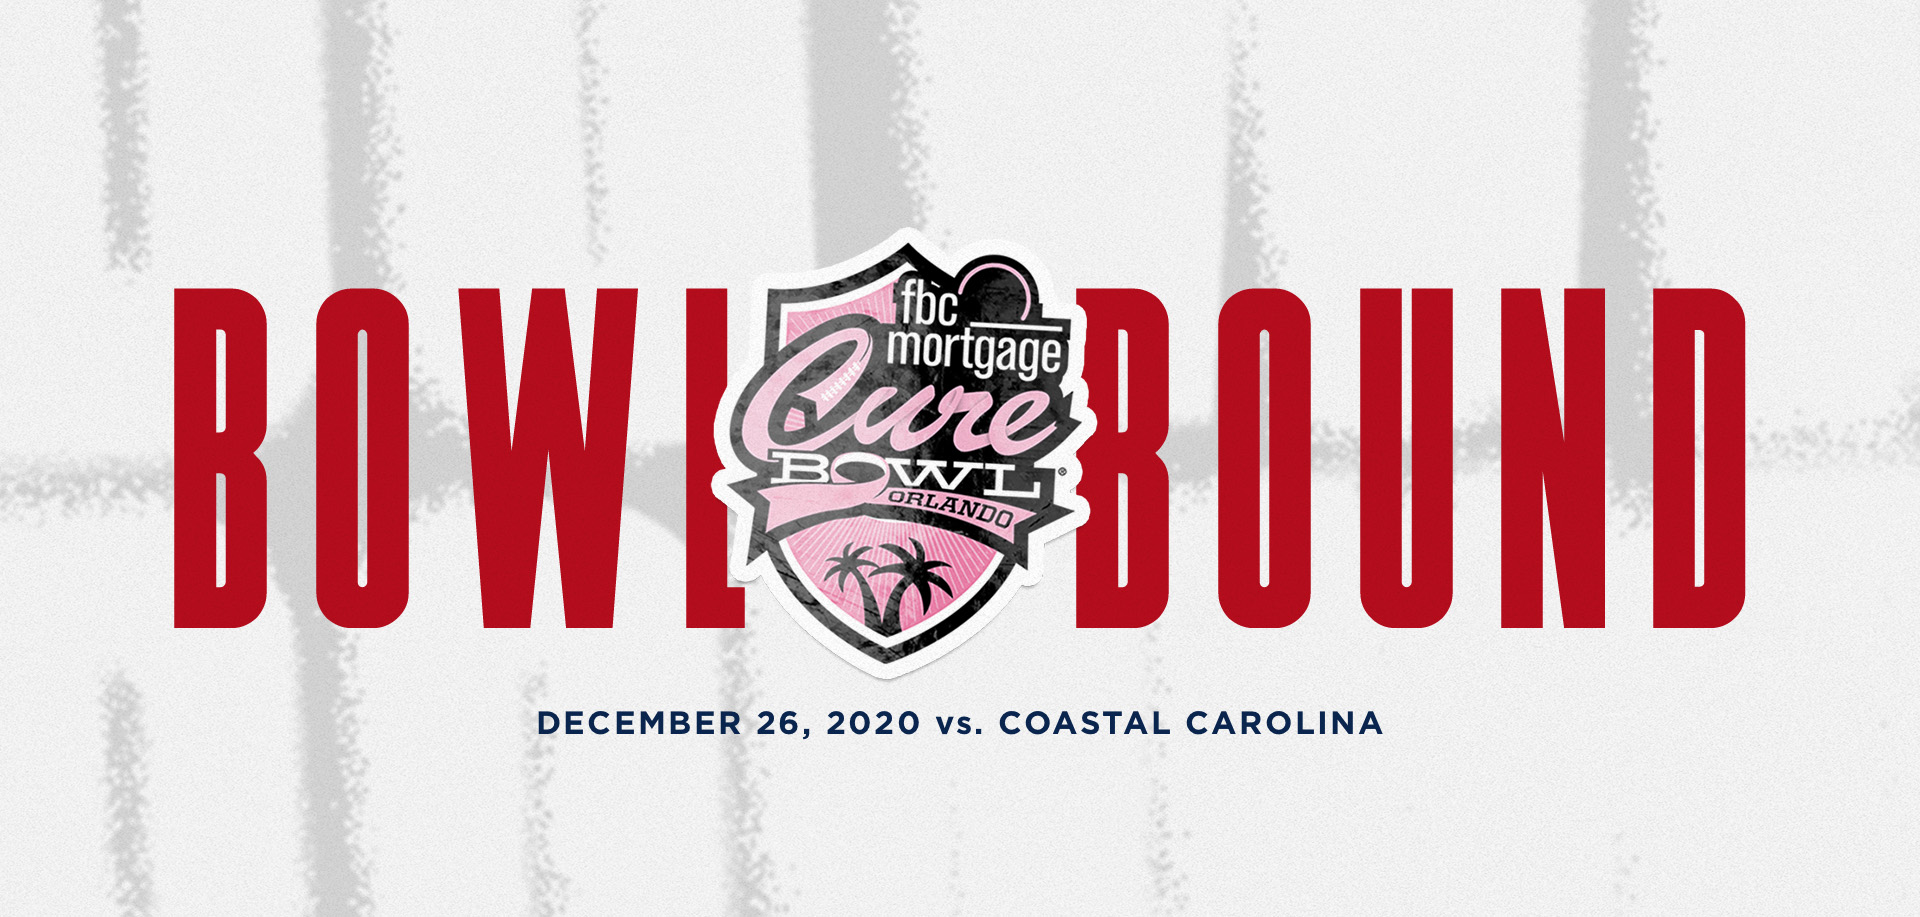 The Flames will look to cap off their best season in program history with a win over No. 9/11 Coastal Carolina in the 2020 FBC Mortgage Cure Bowl on Saturday, Dec. 26.